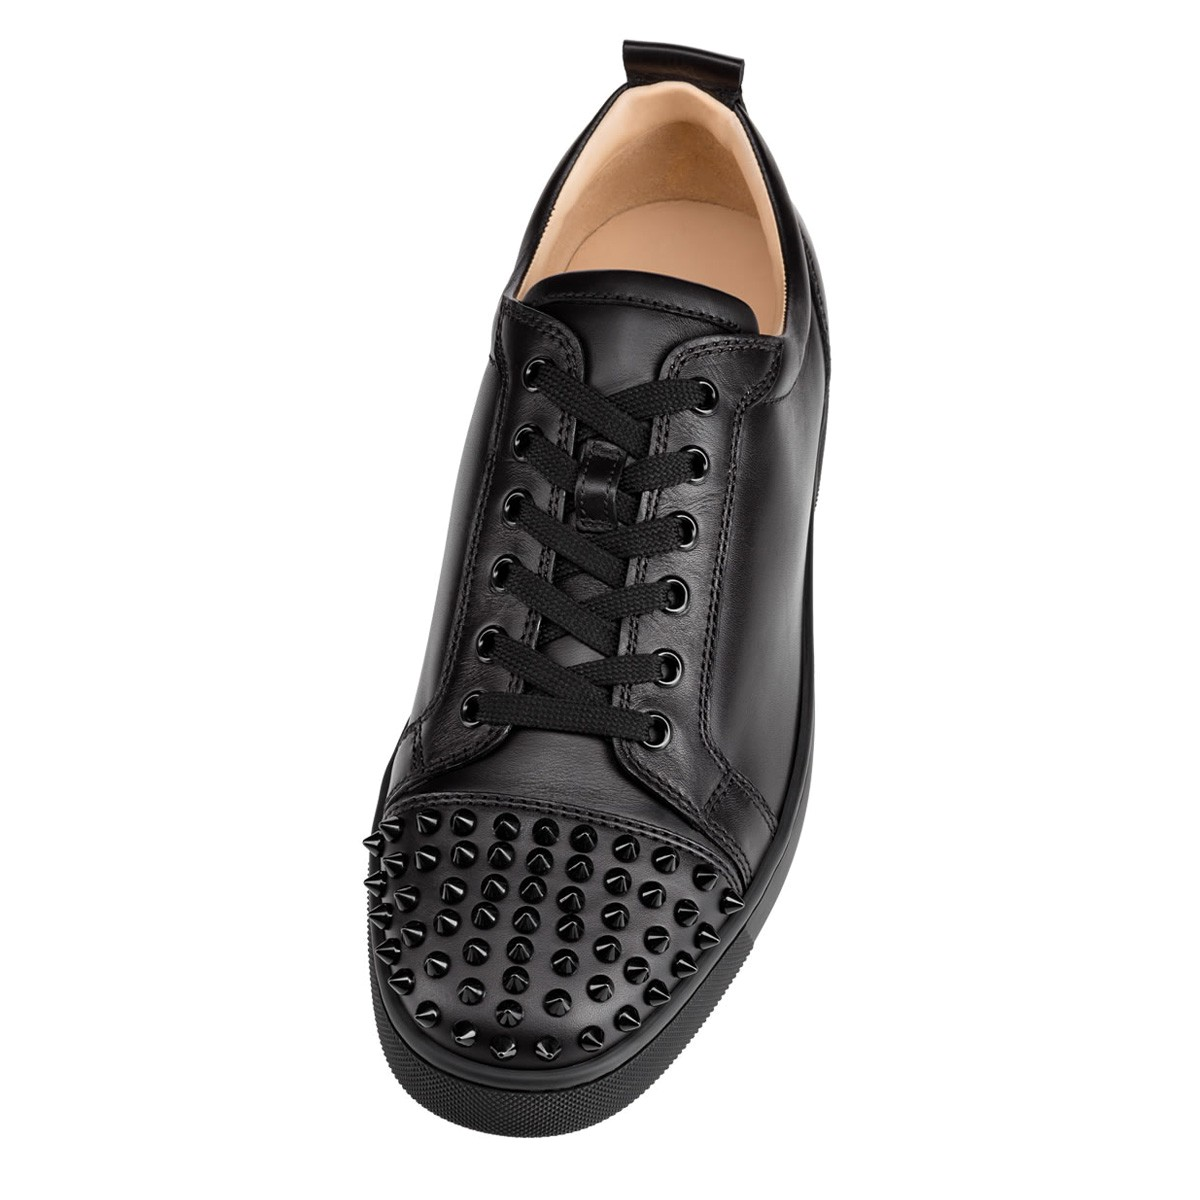 premium selection 380b3 6f037 Louis Junior Spikes Black/Black Leather - Men Shoes - Christian Louboutin